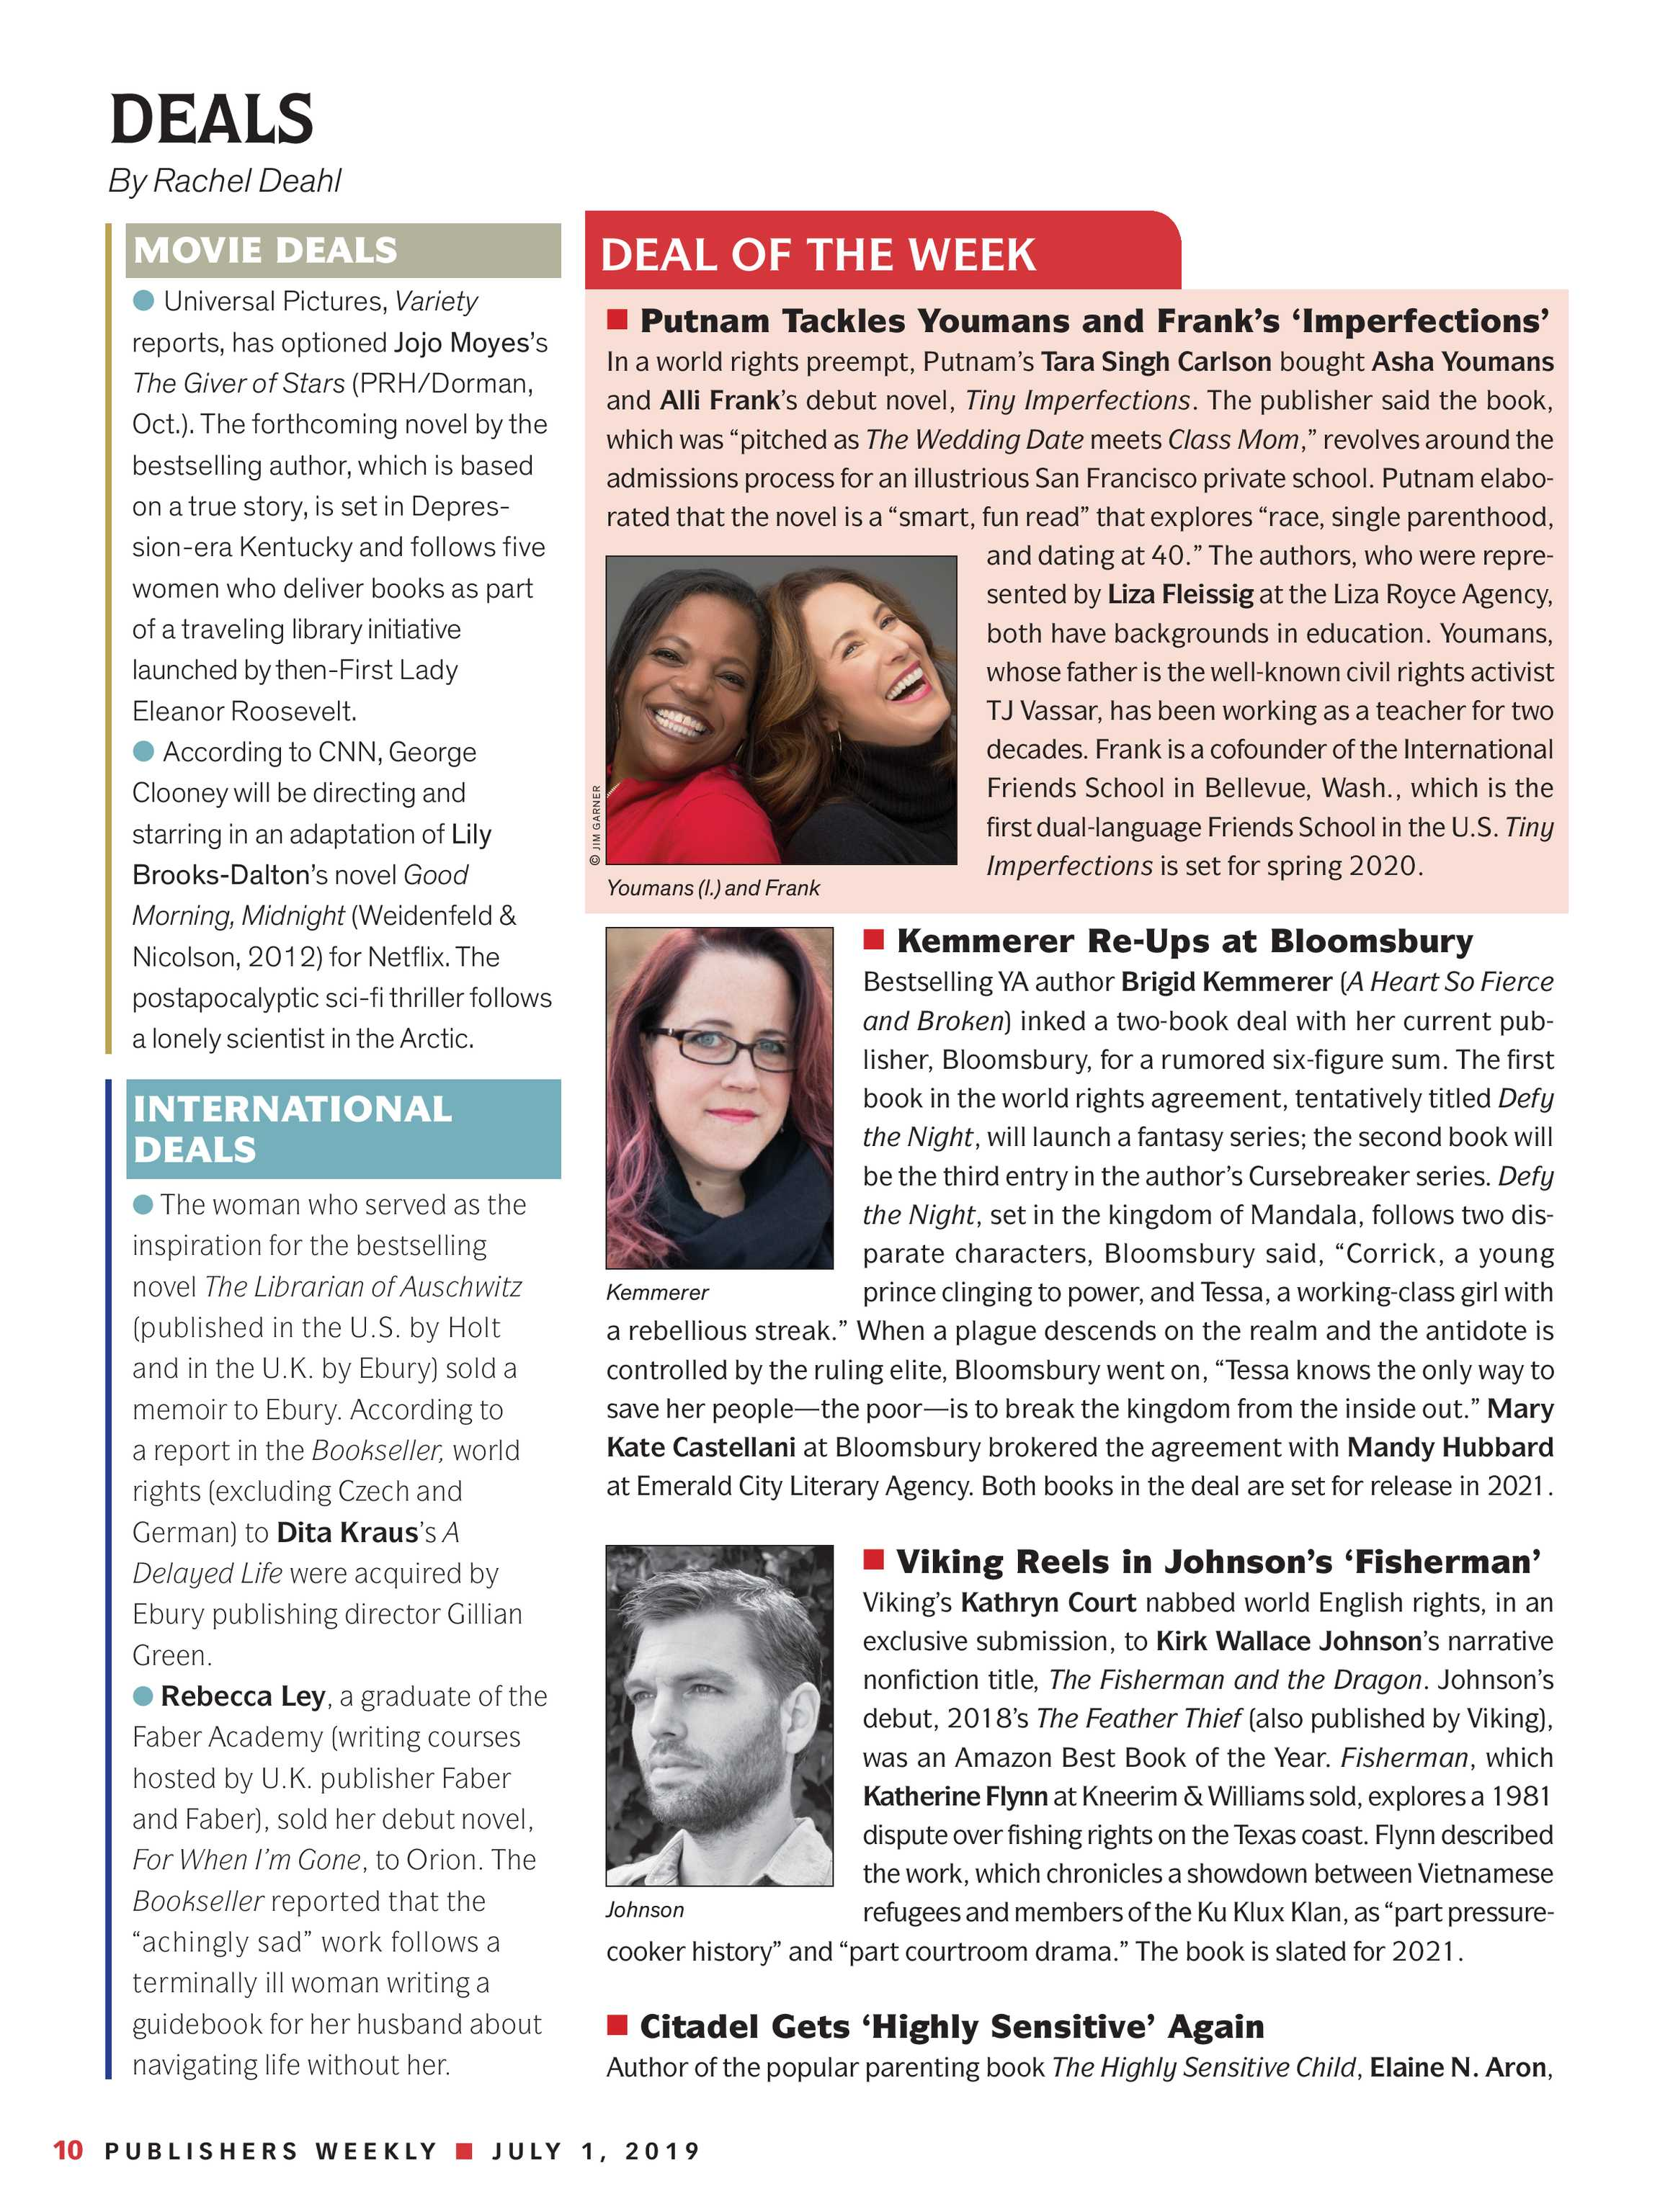 Publishers Weekly - July 1, 2019 - page 10